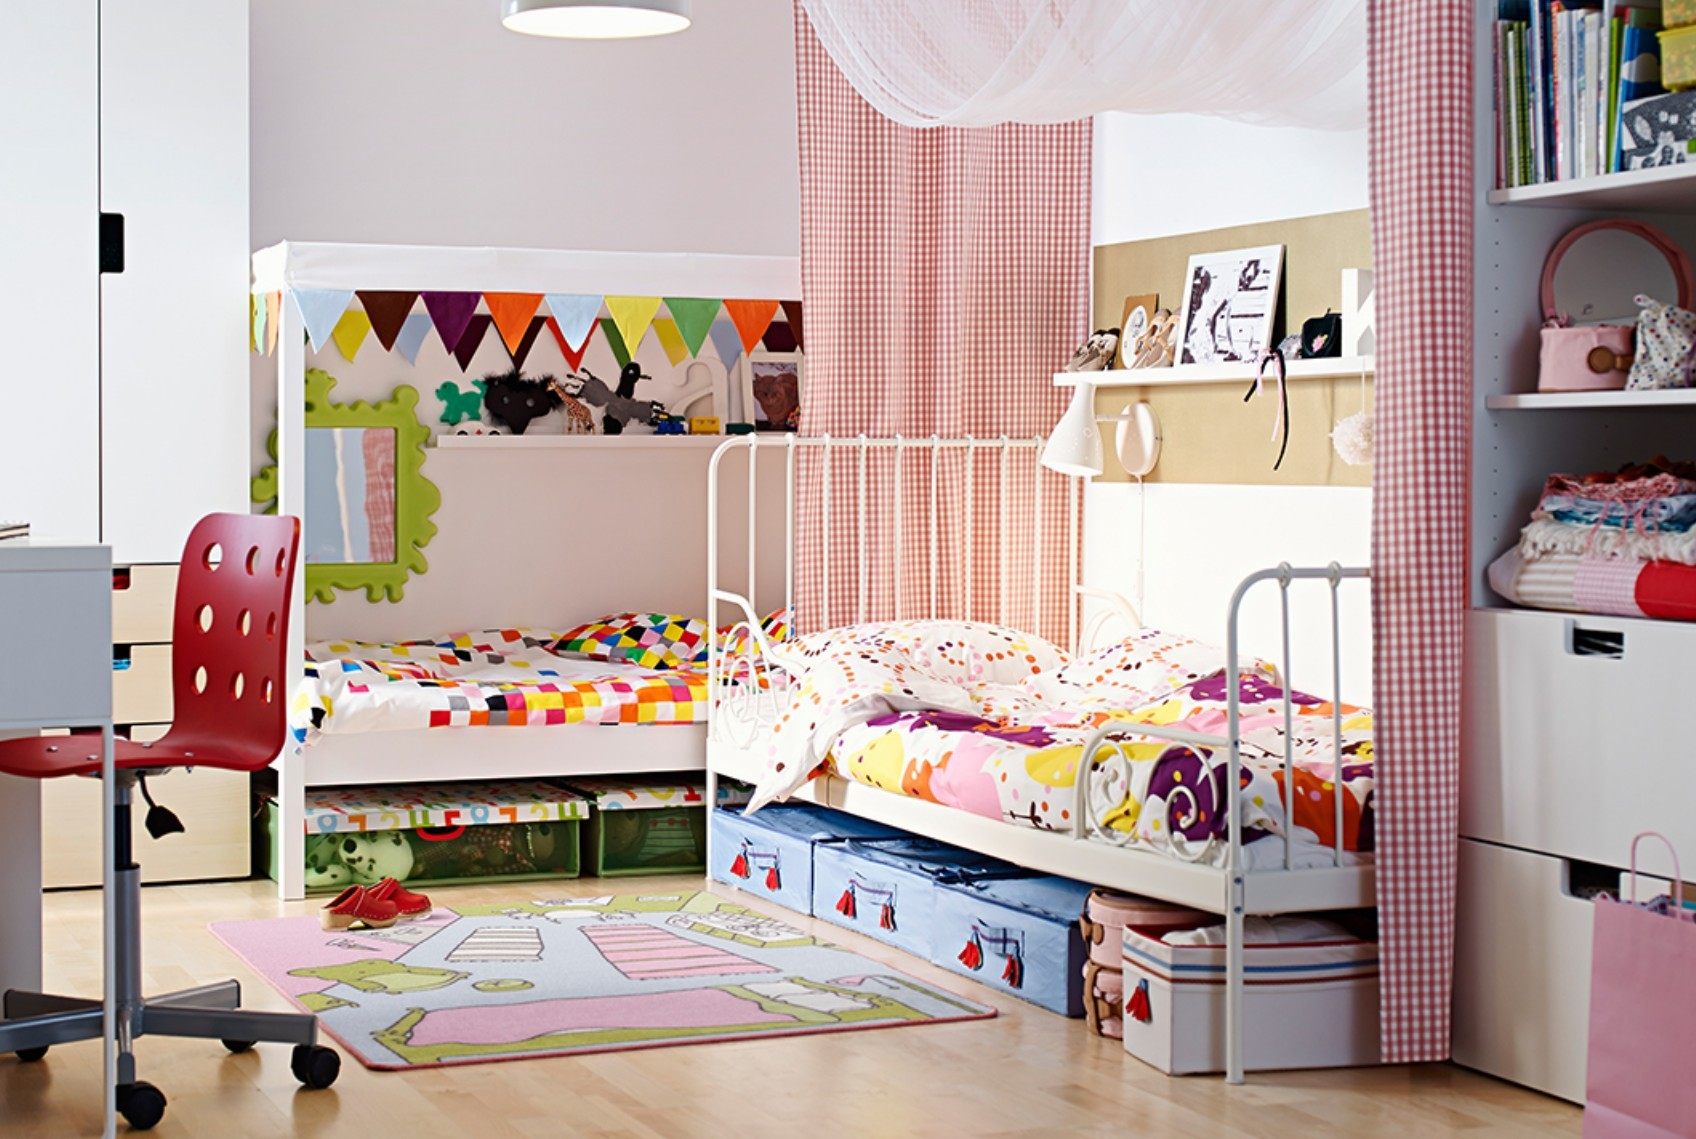 Vintage-furniture-brings-unique-magic-into-a-modern-kids-room-